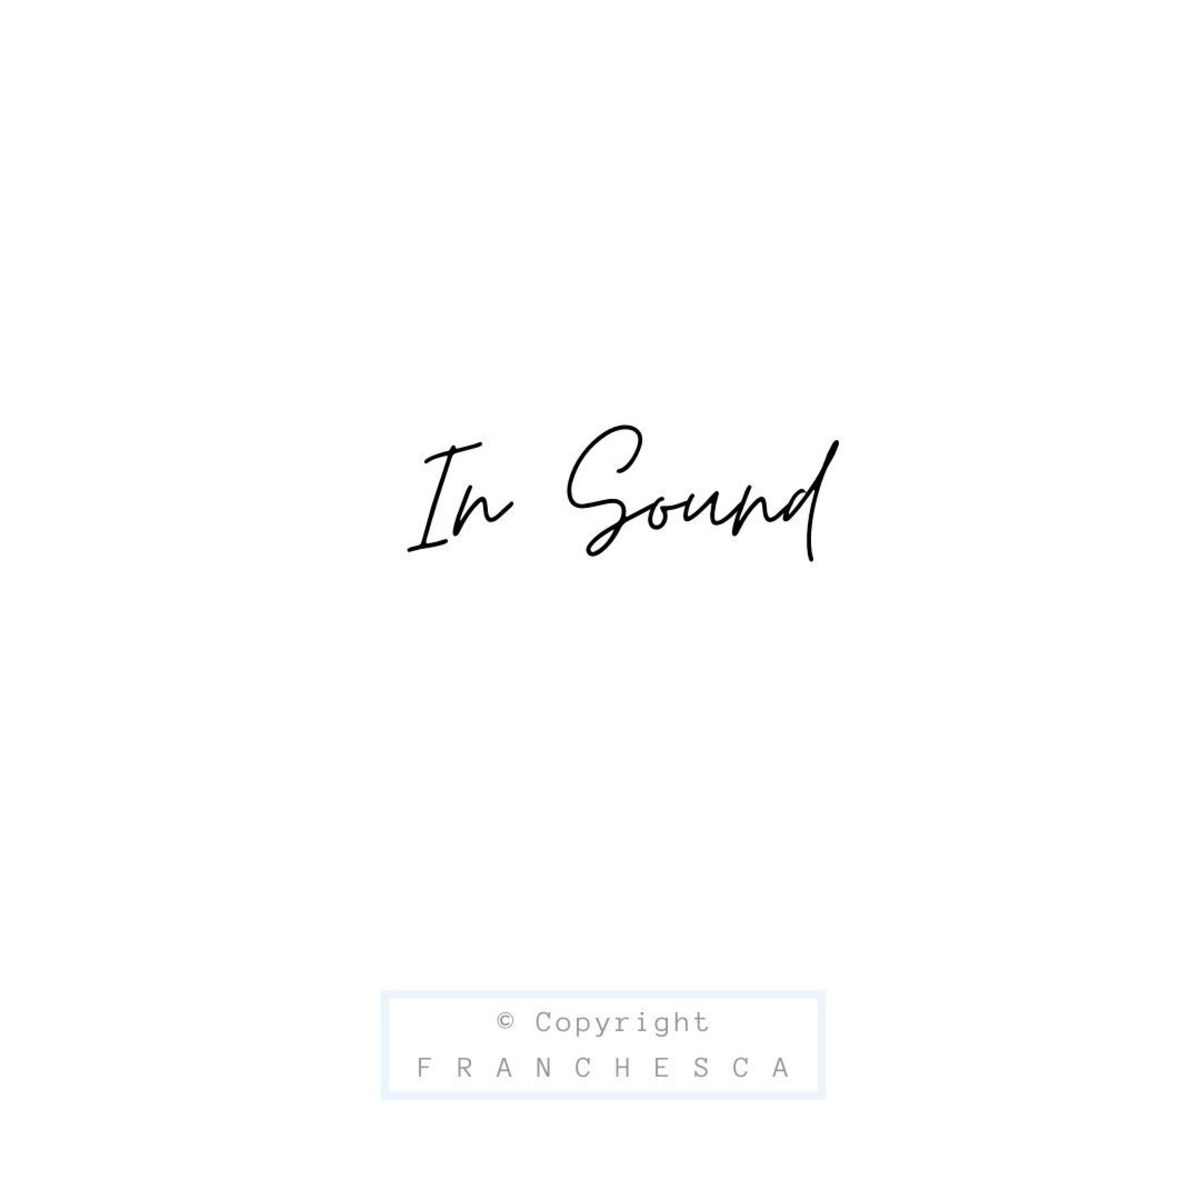 93rd-article-in-sound